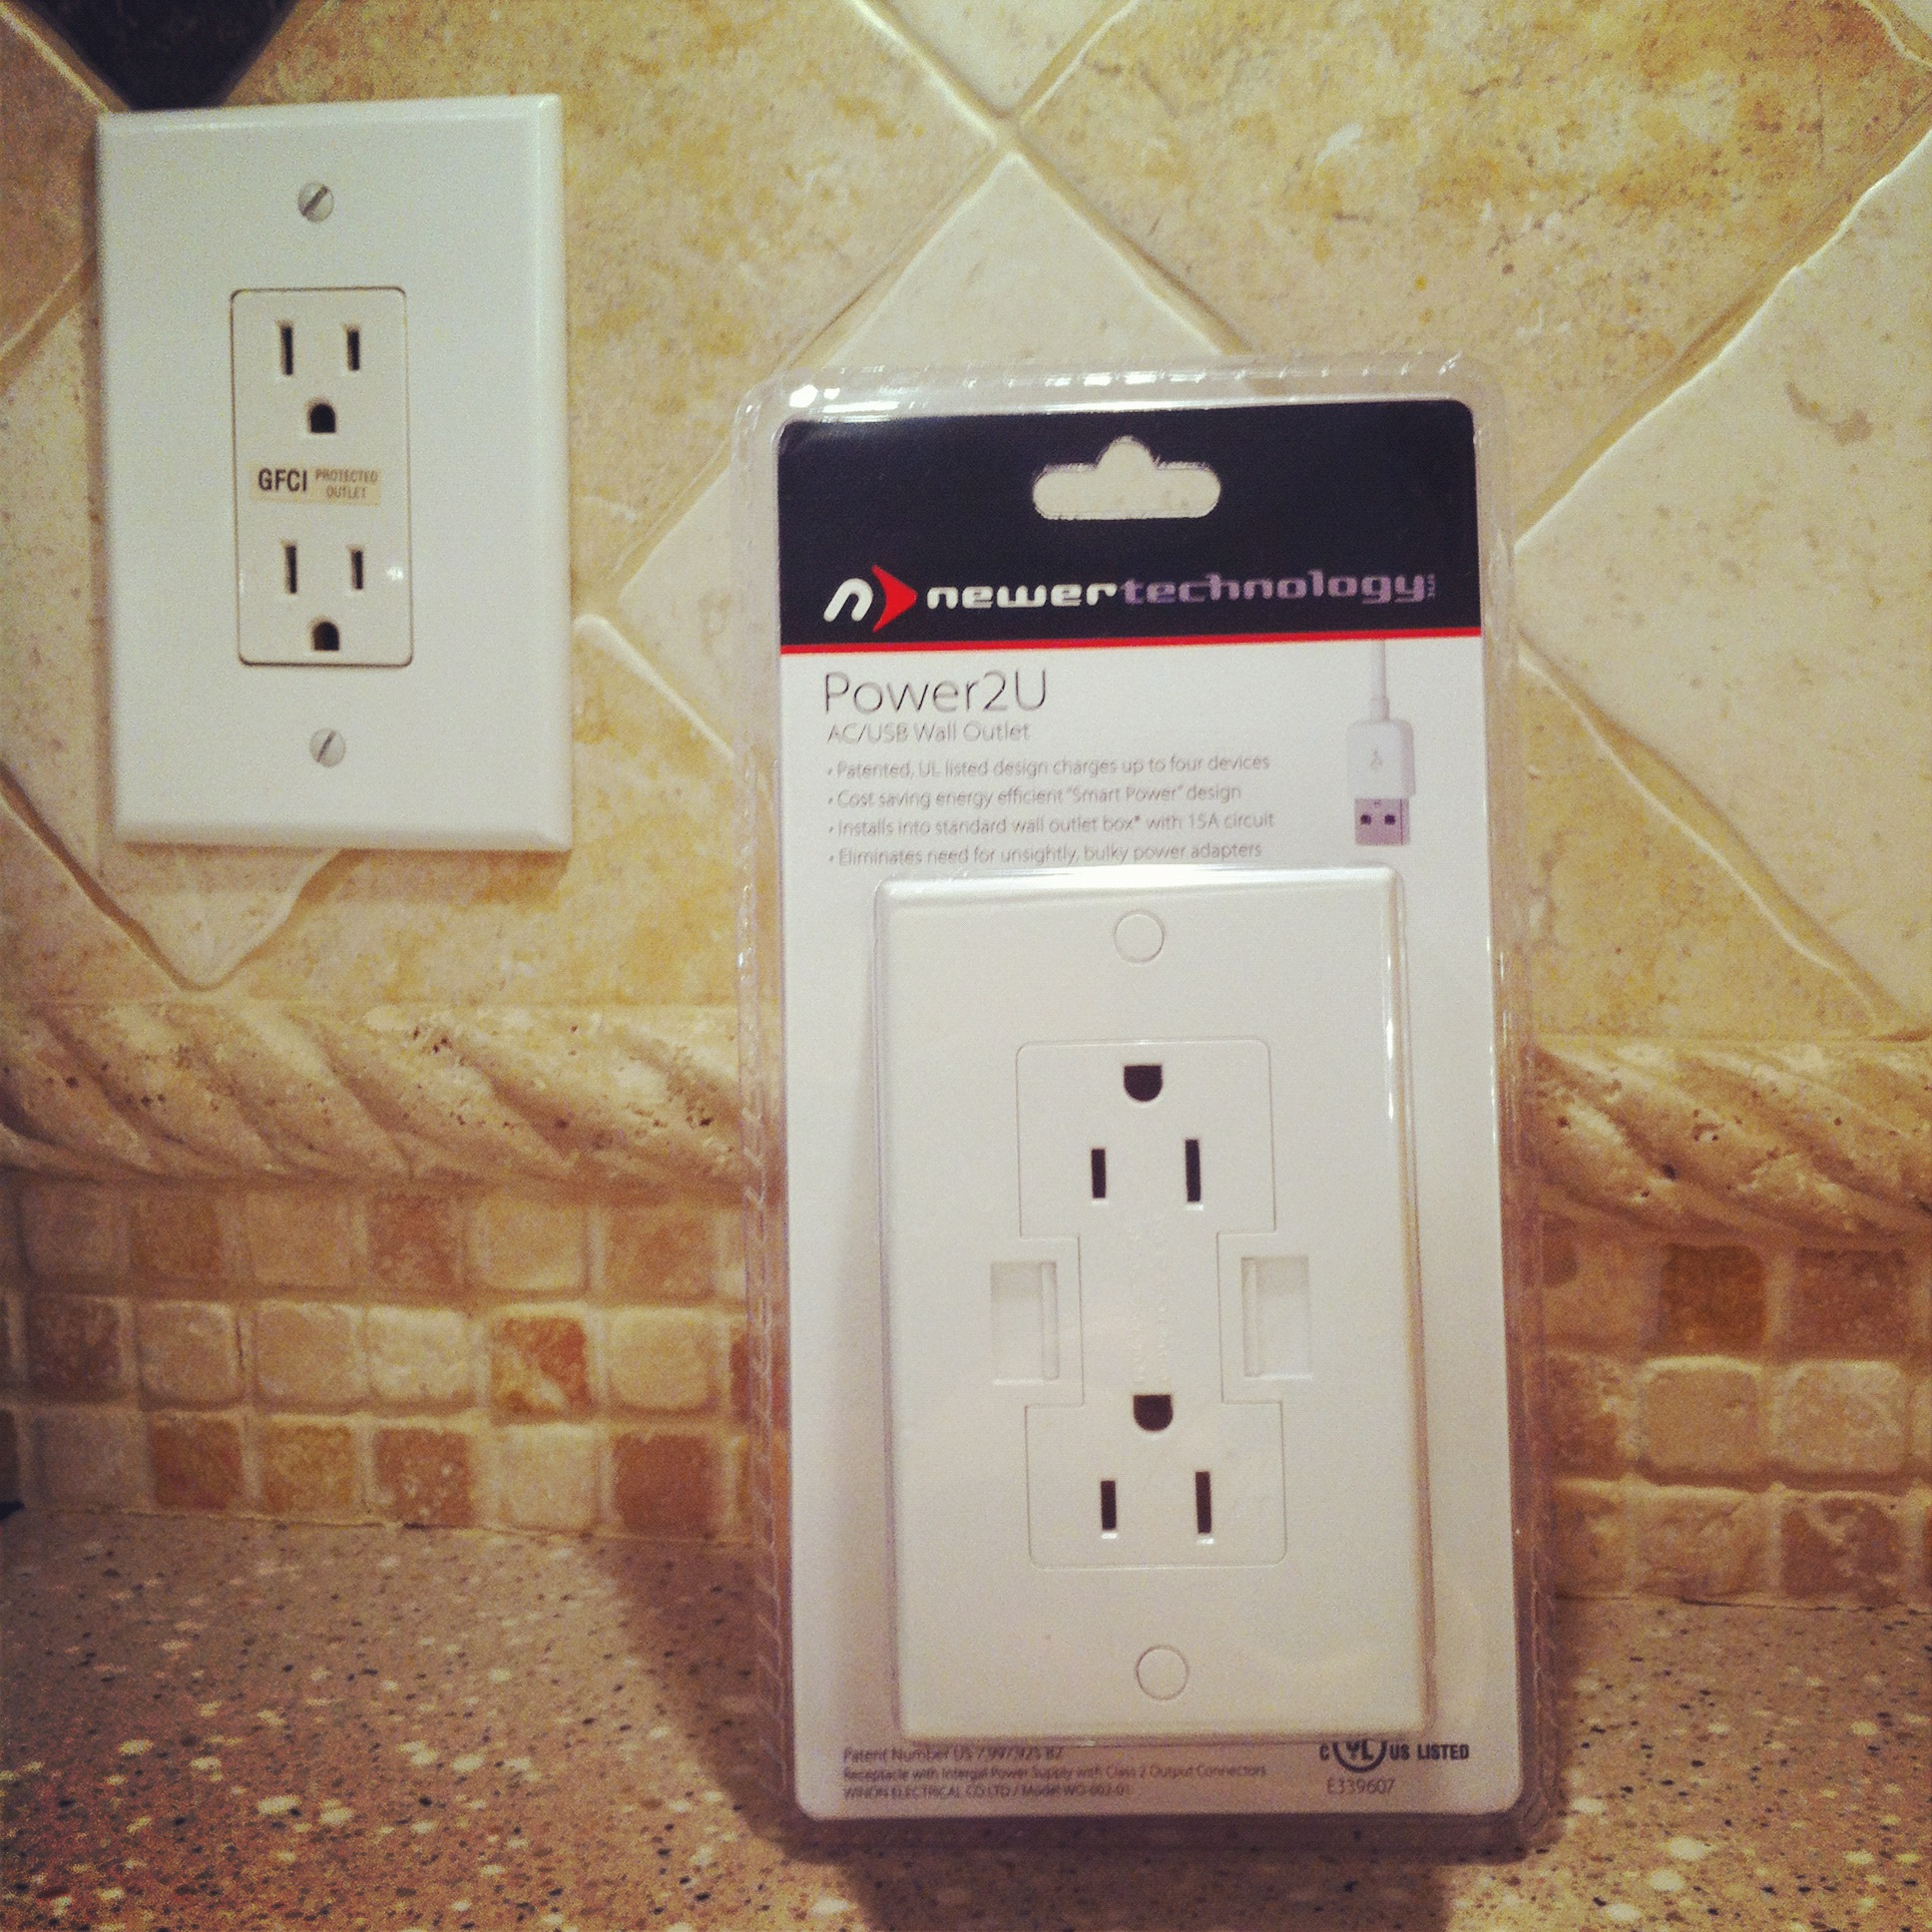 Newer+Technology+Power2U+USB+Receptacle+Review